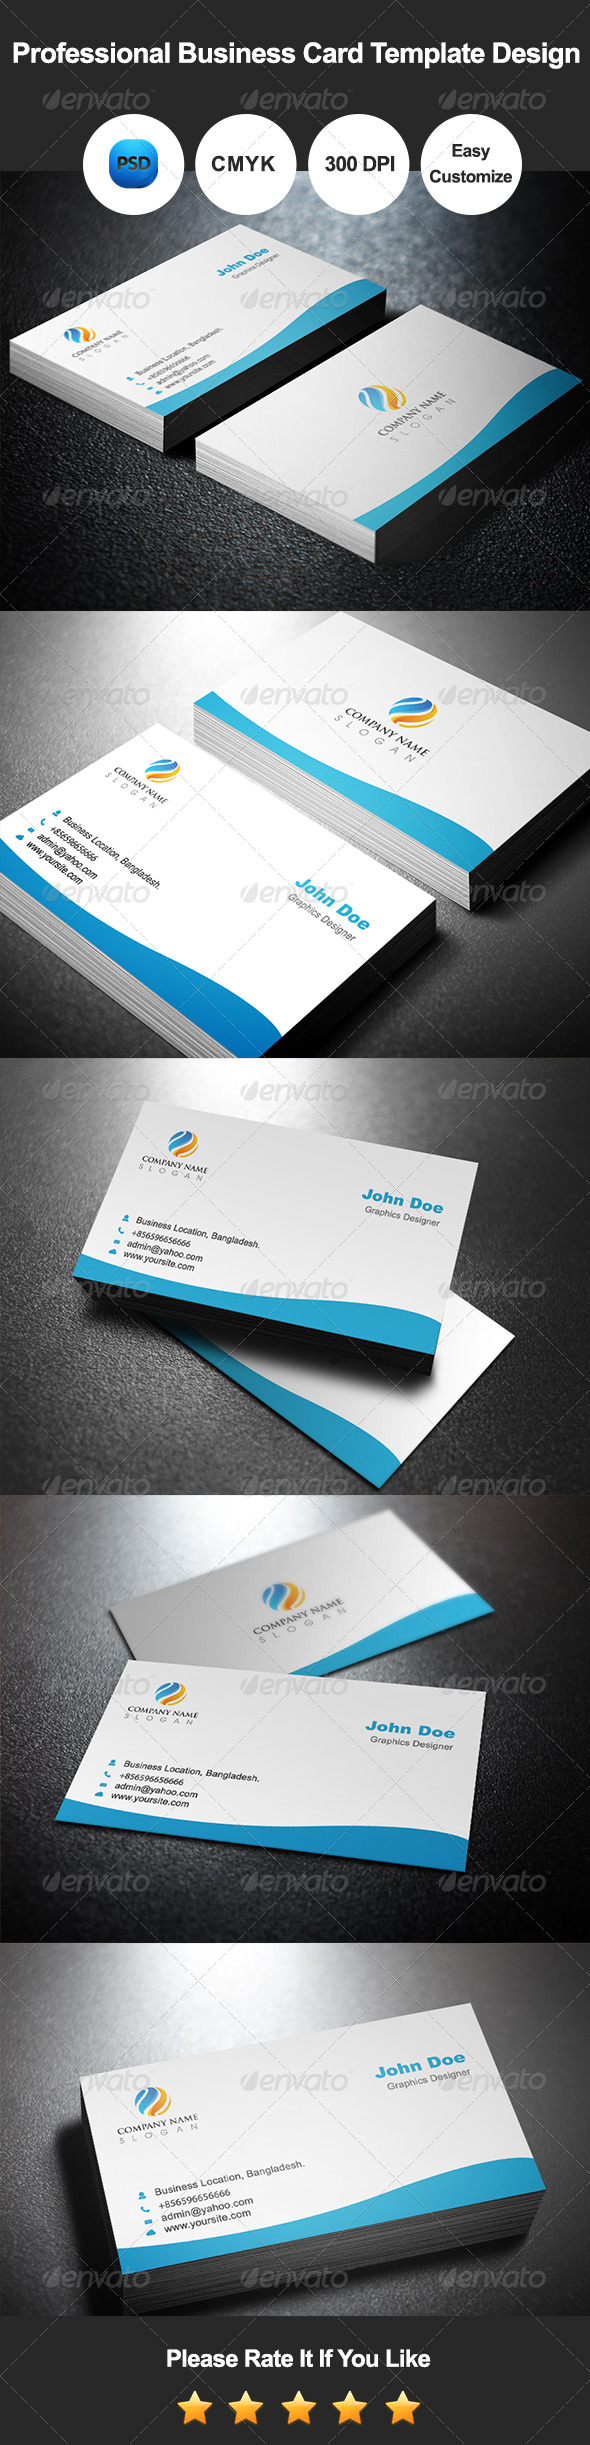 GraphicRiver Professional Business Card Template Design 7500754